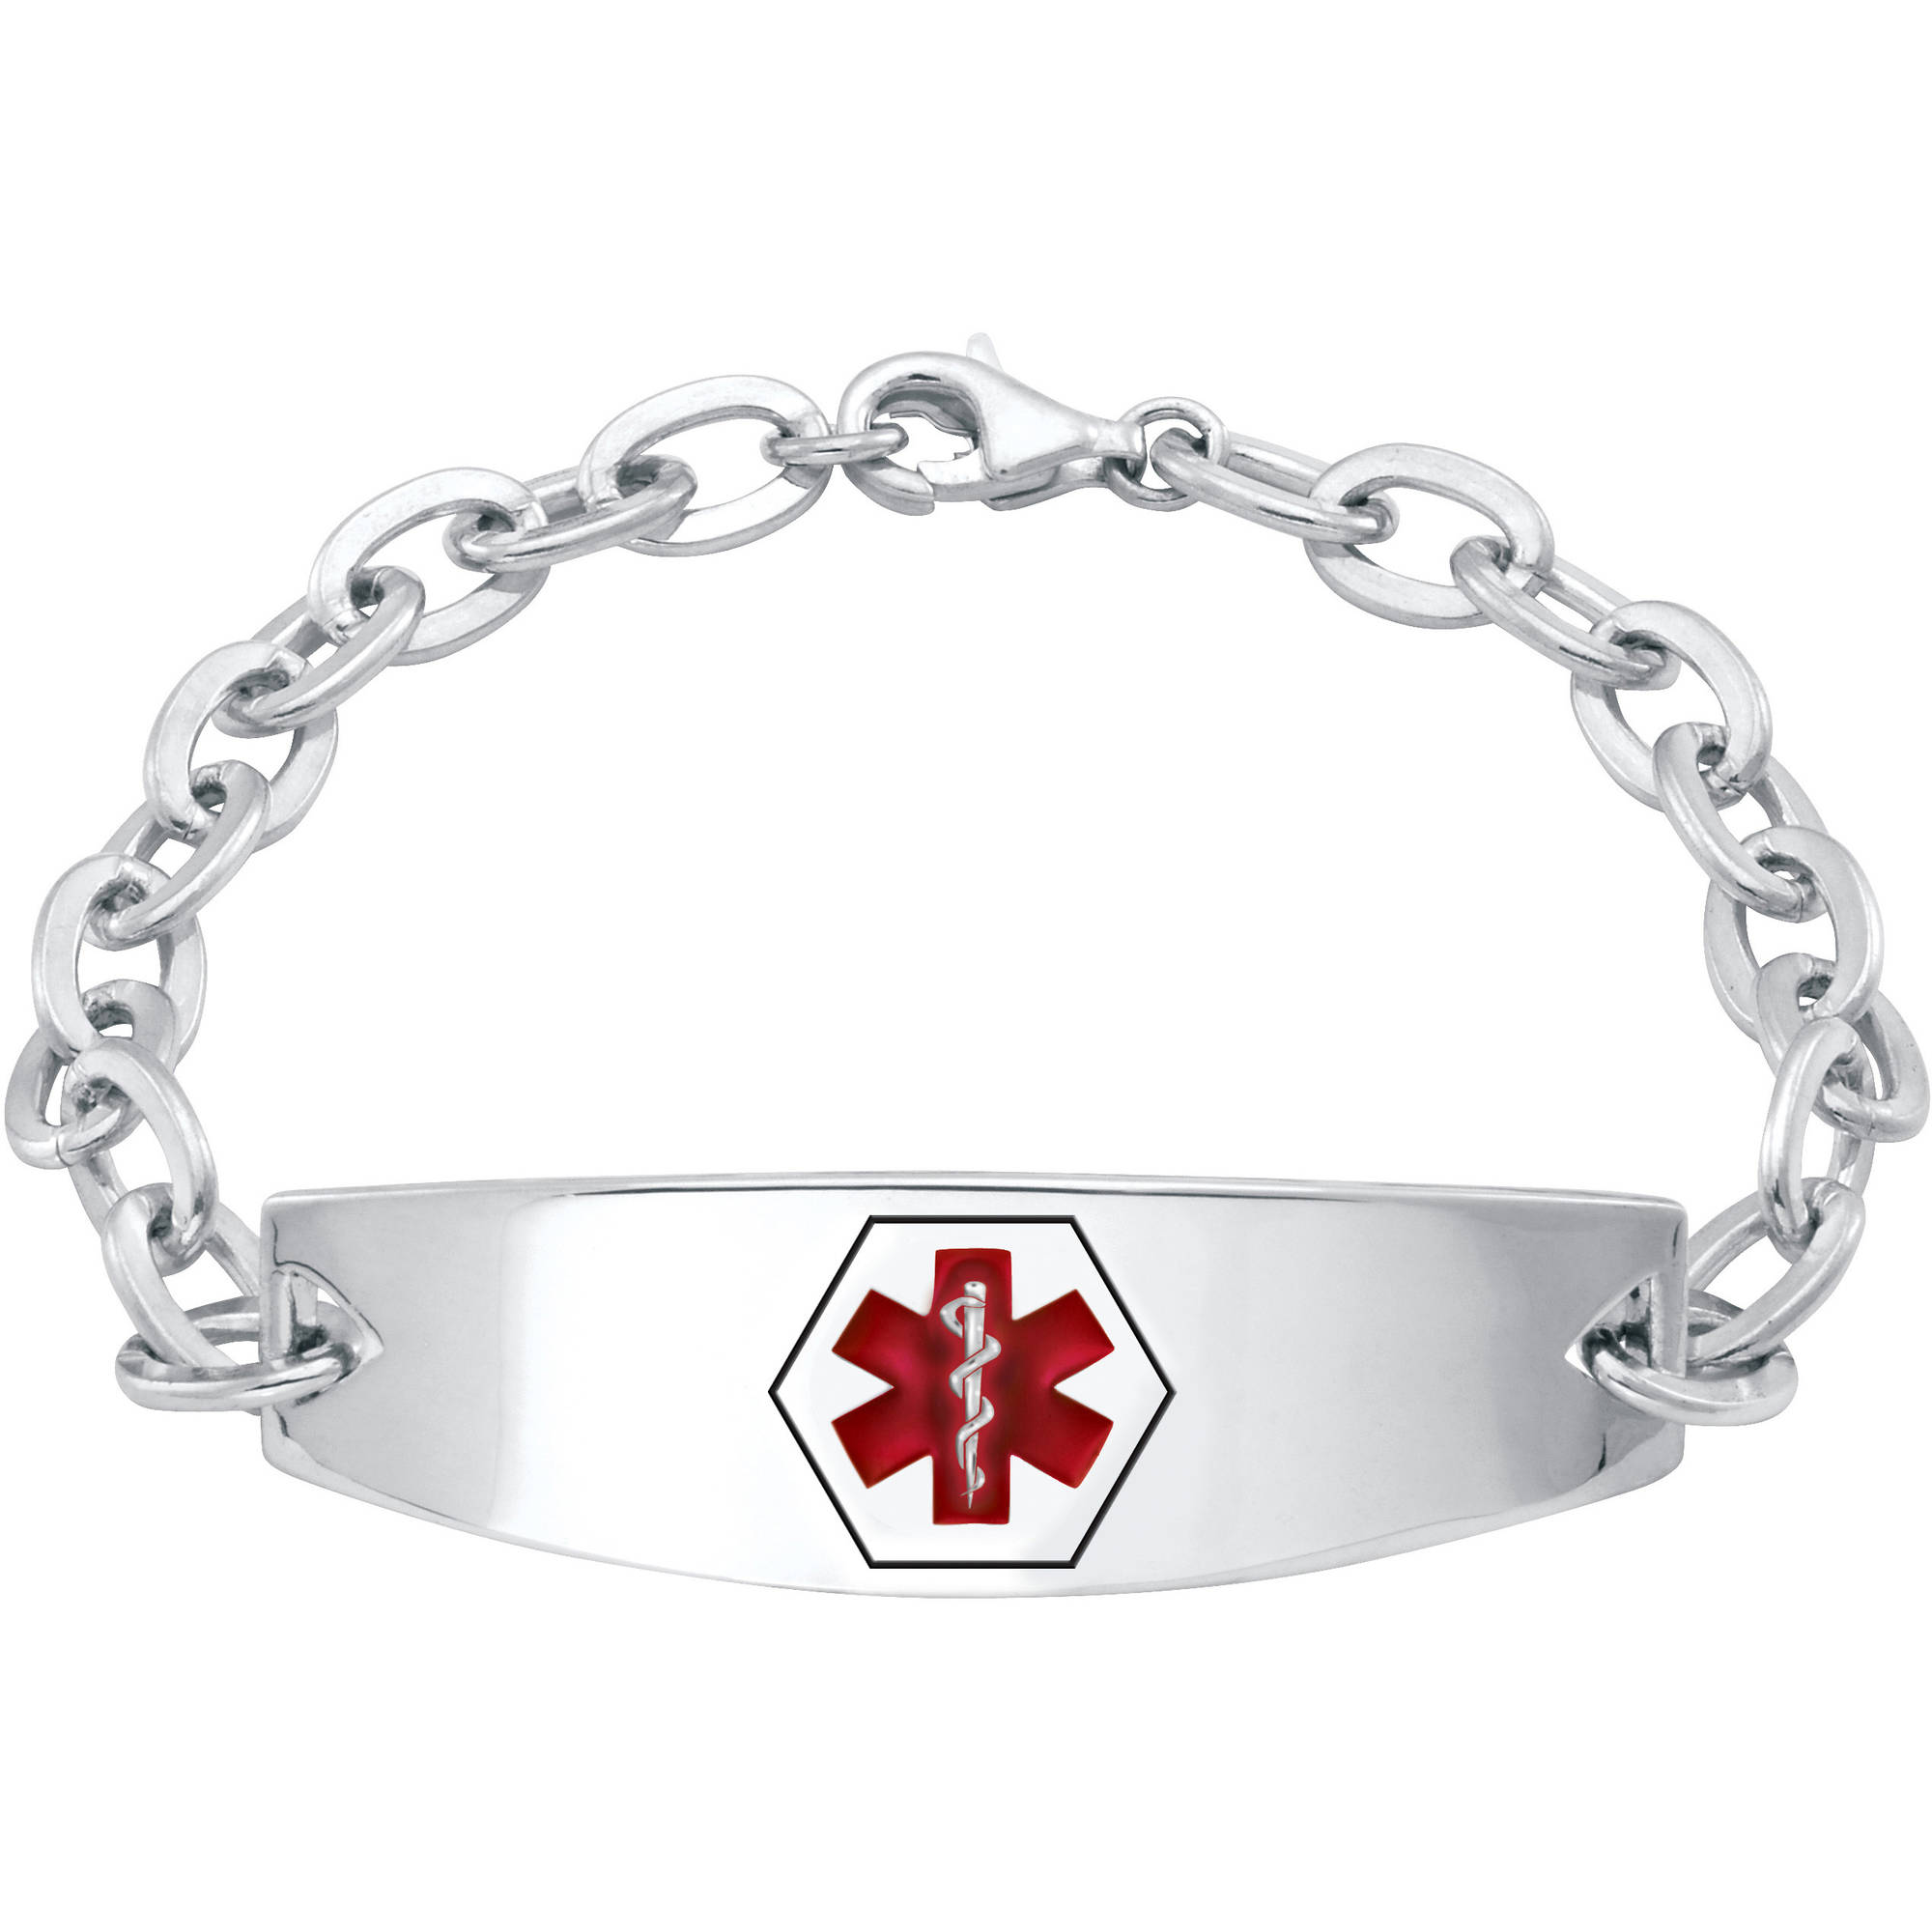 Keepsake Personalized Family Jewelry Women S Medical Id Bracelet In Stainless Steel Or Sterling Silver